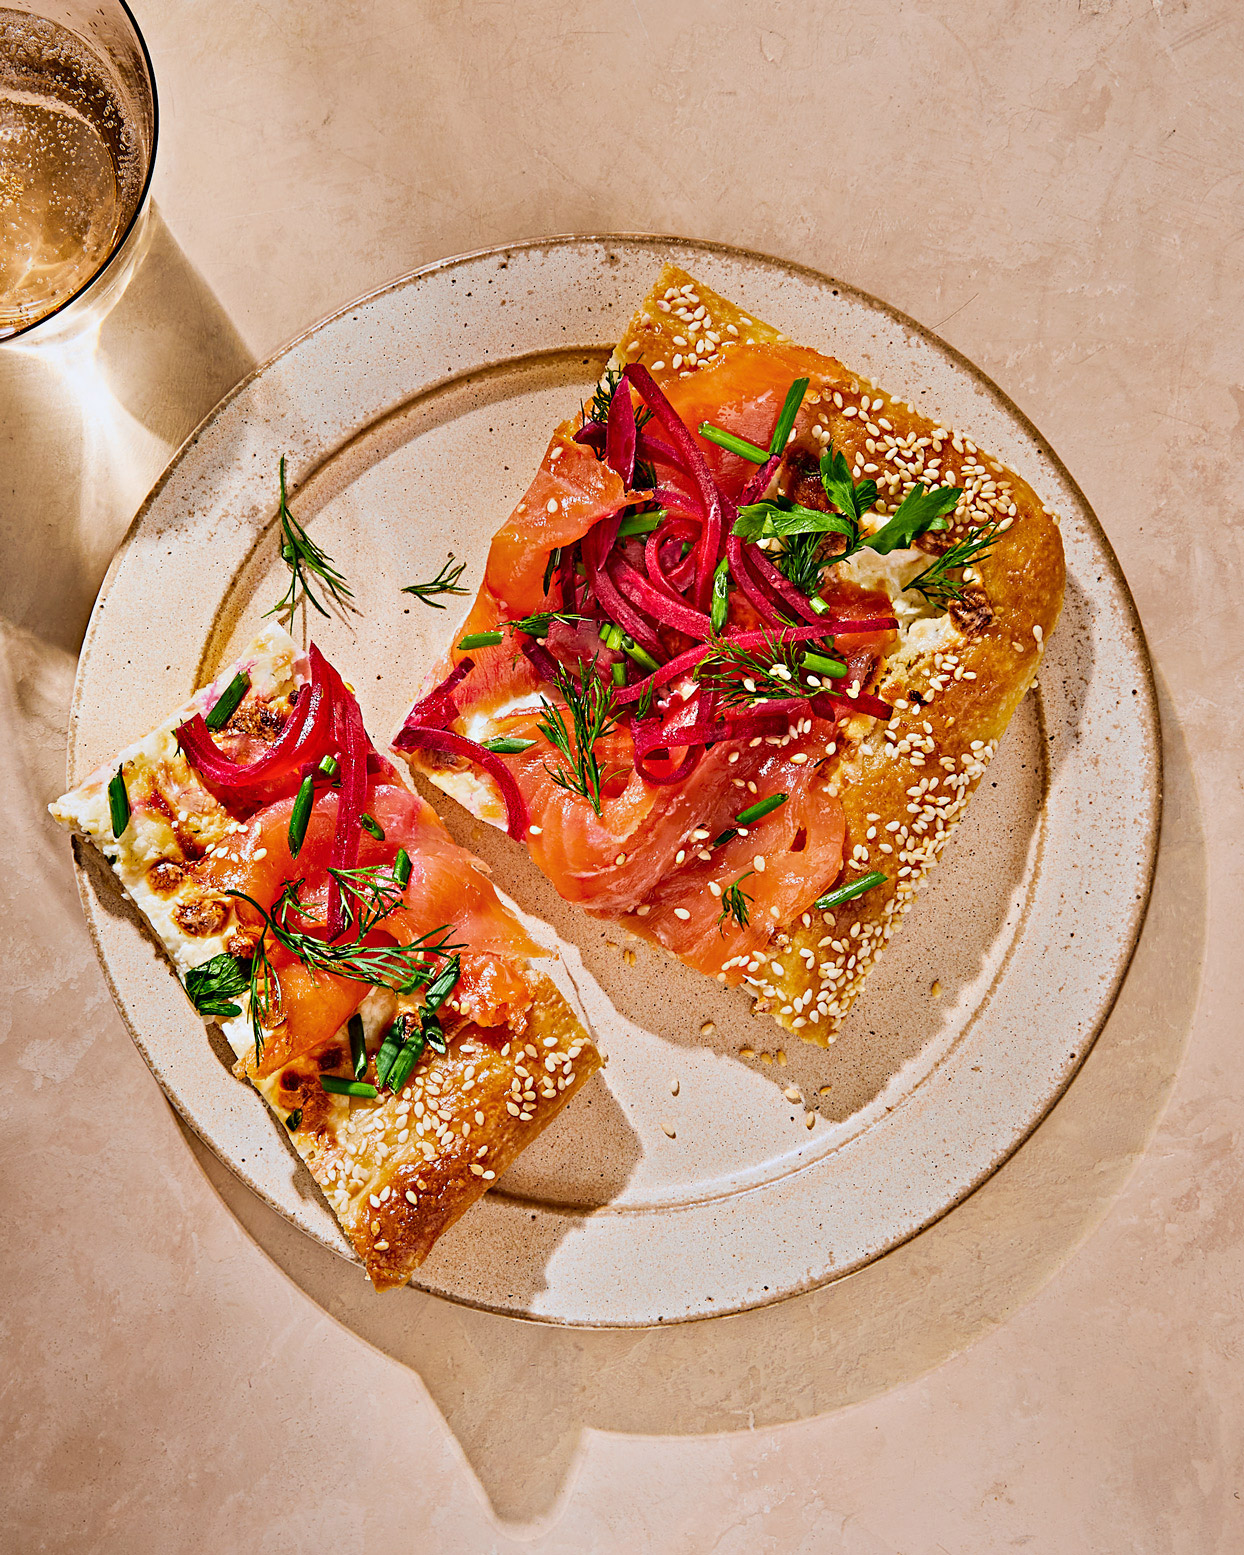 Smoked-Salmon Flatbread with Pickled Beet